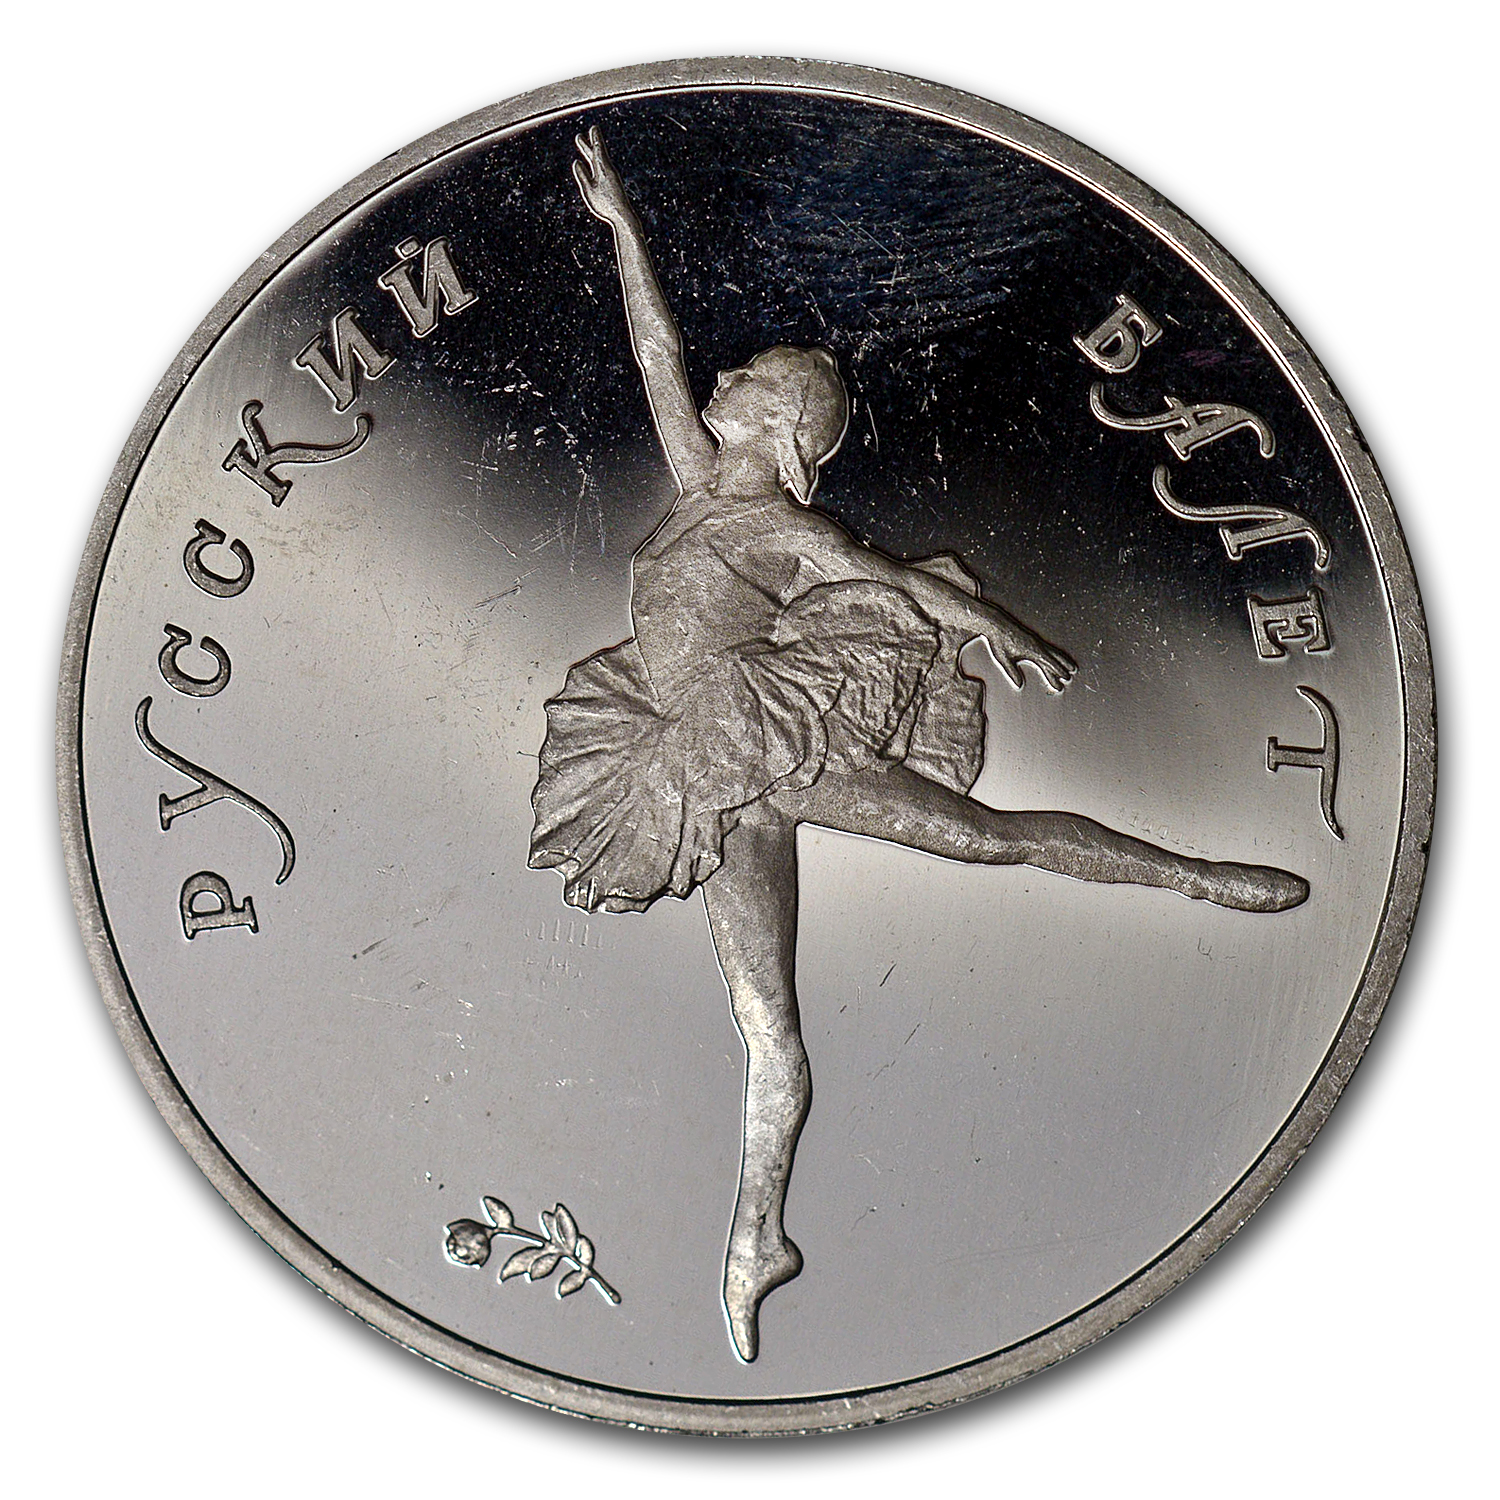 1991 1 oz Russian Palladium Ballerina